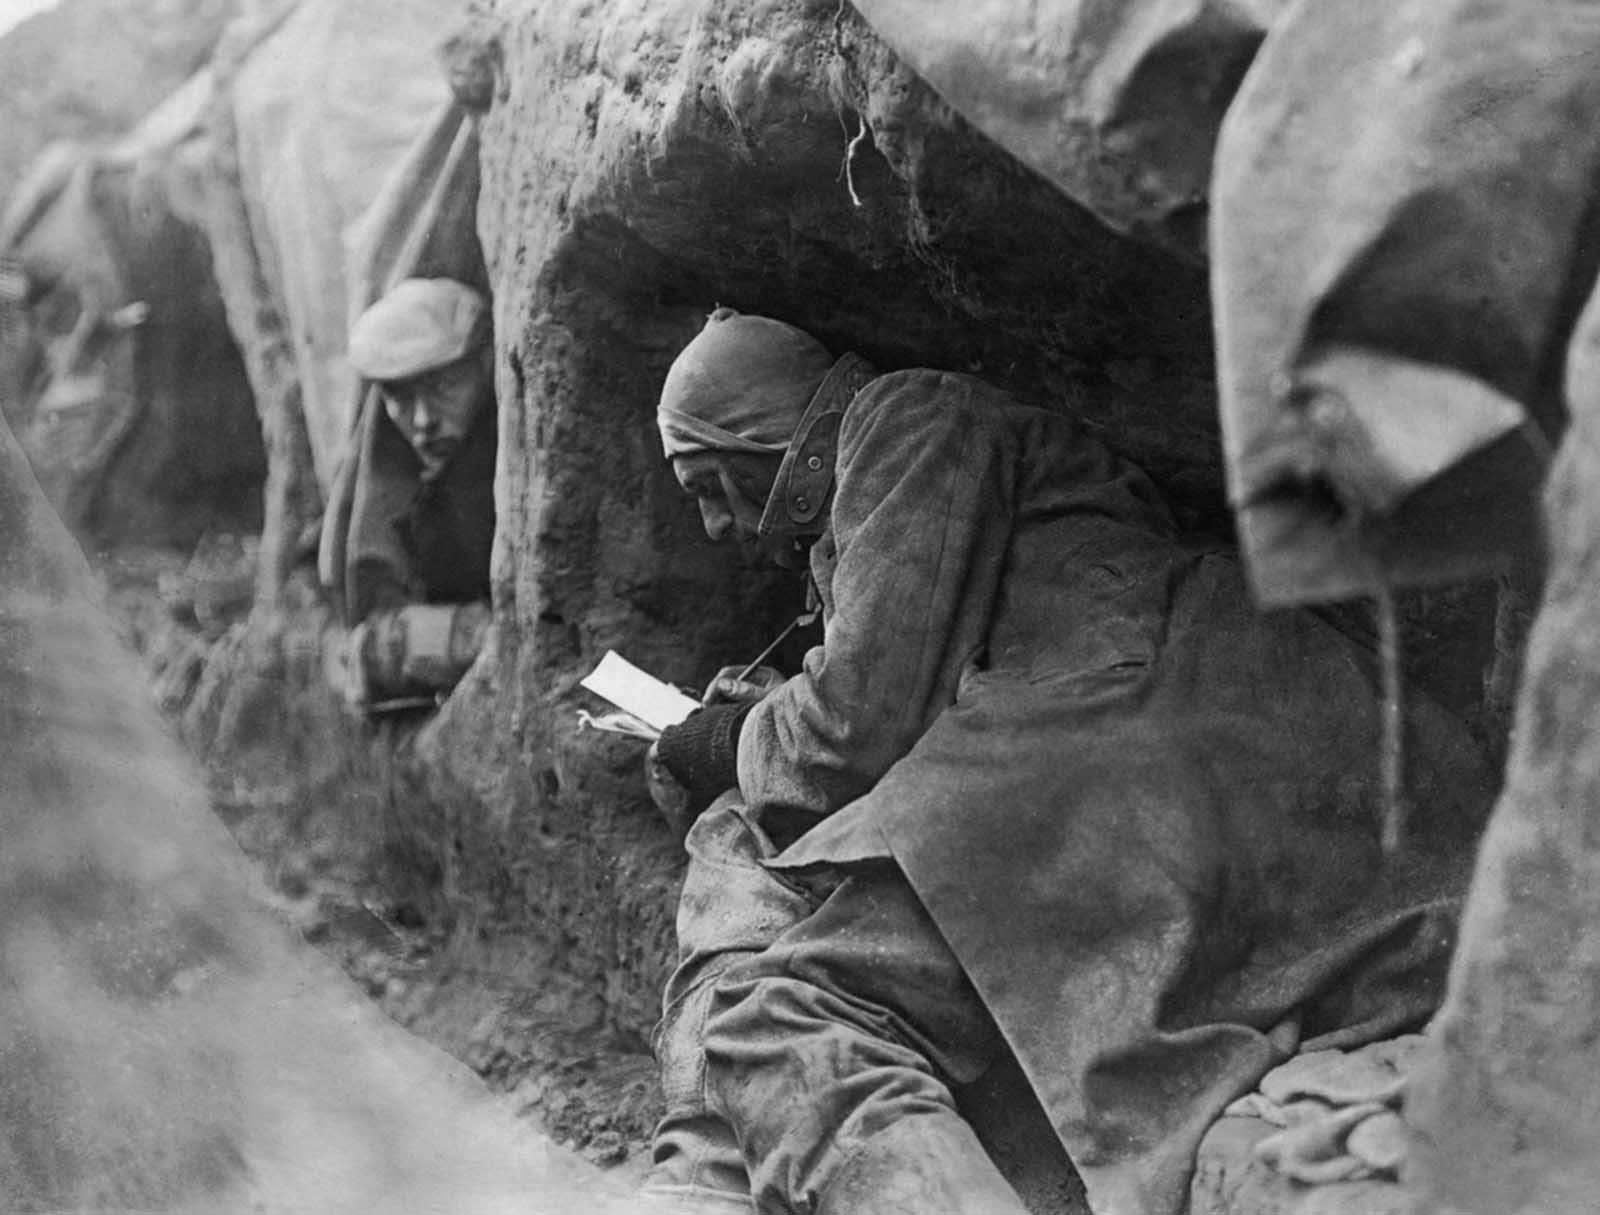 Soldiers in trenches during write letters home. Life in the trenches was summed up by the phrase which later became well-known: